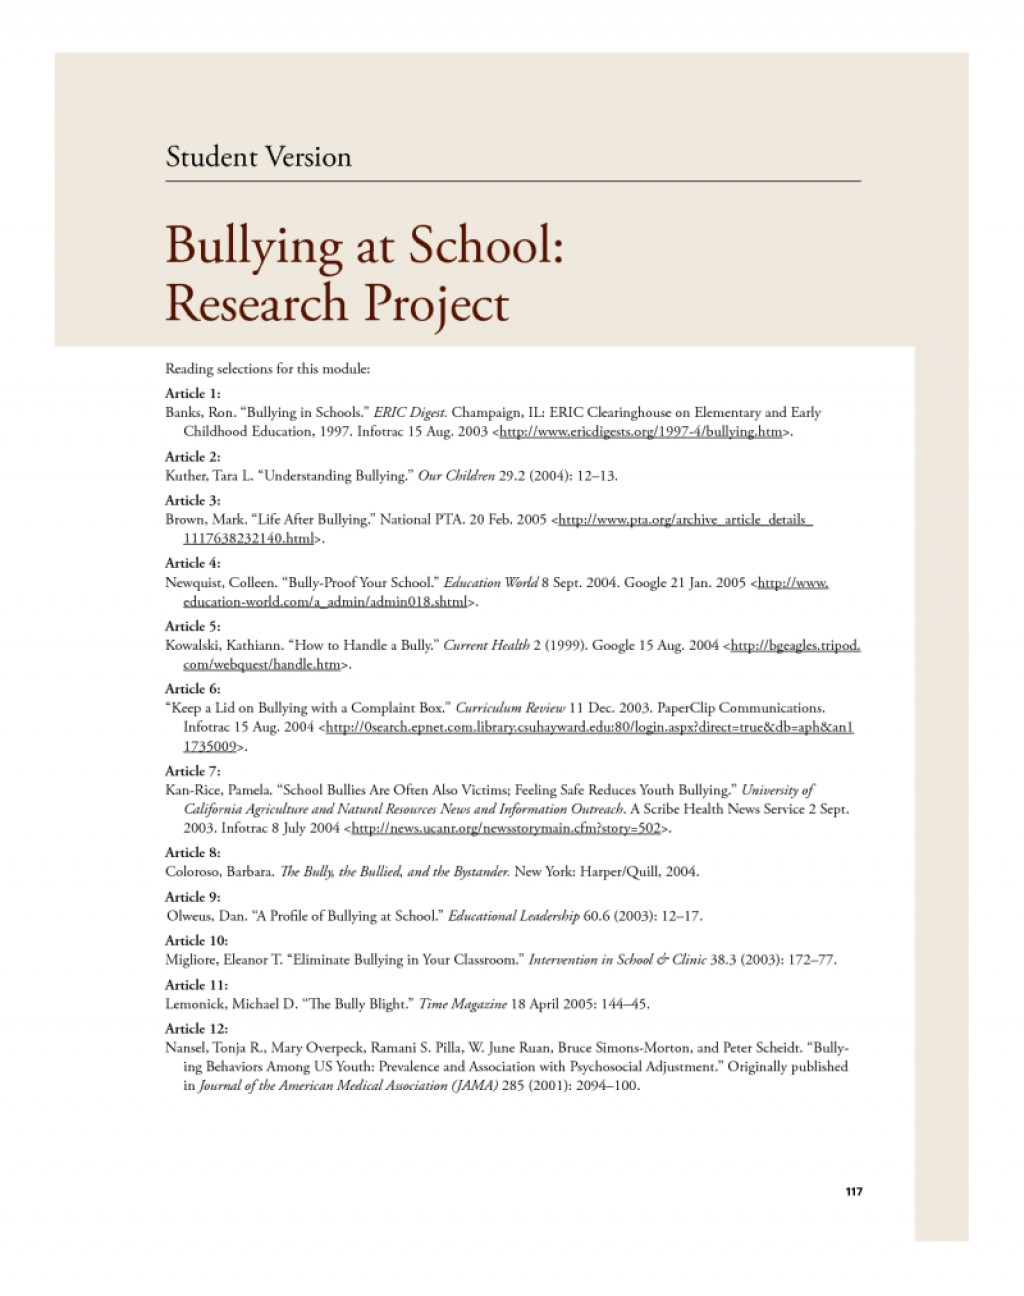 011 Persuasive Essay On Bullying Example Dreaded Argumentative Topics In Schools Examples Cyberbullying Large